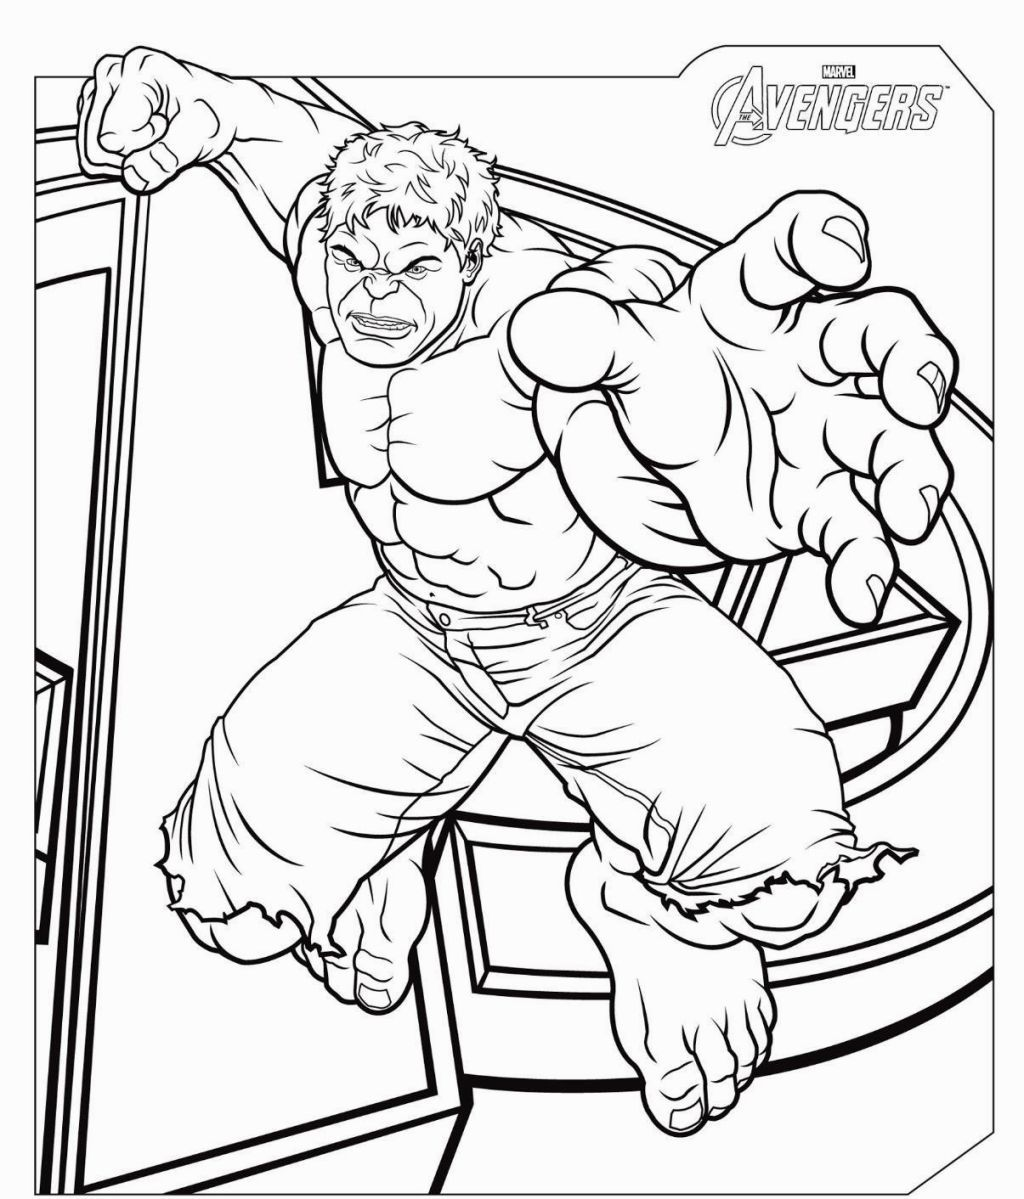 Avengers Coloring Sheets Coloring Pages Pinterest